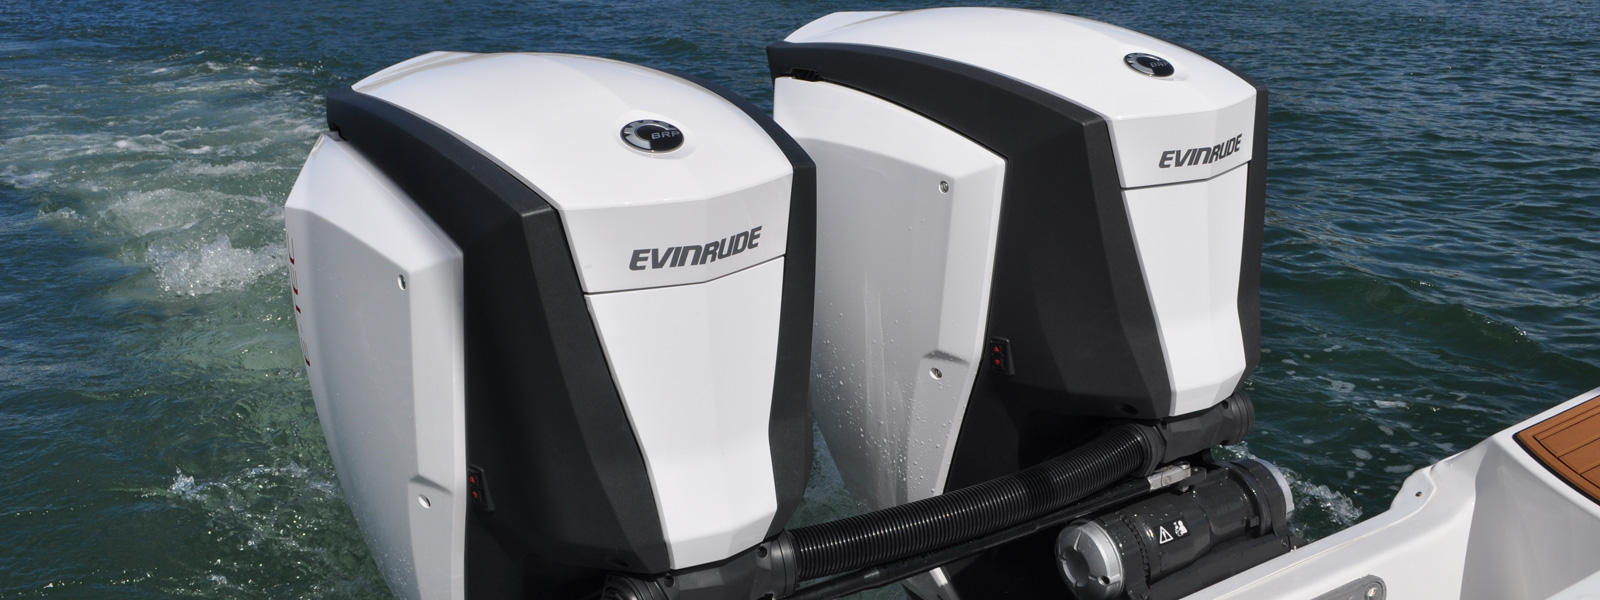 Stacer and Evinrude